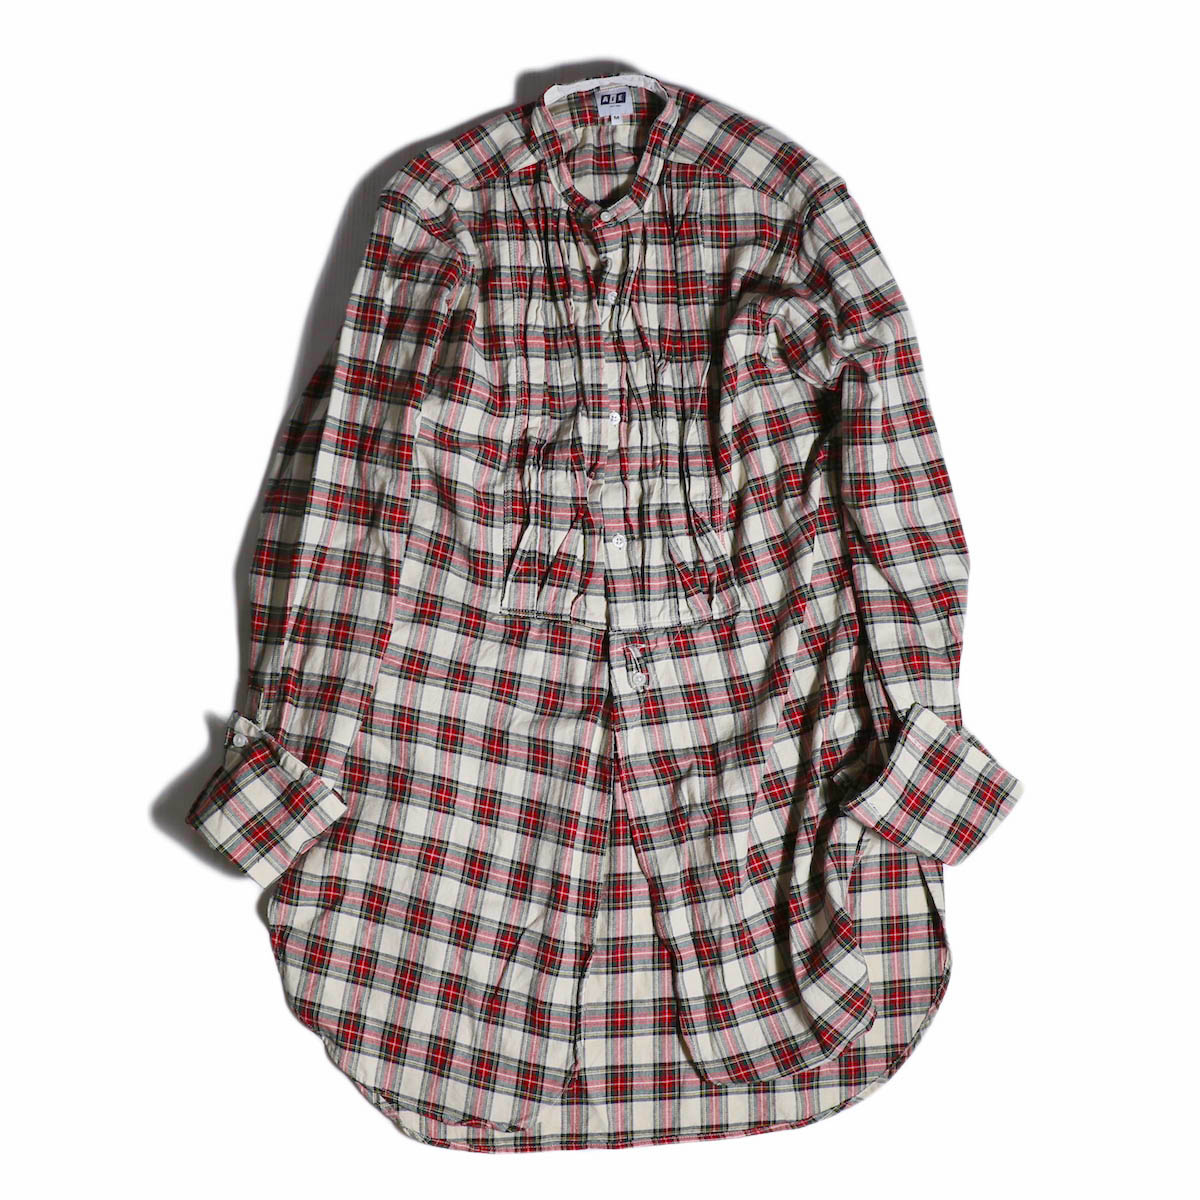 AiE / Tux Shirt -Hv.Weight Tartan Check -Nat/Red